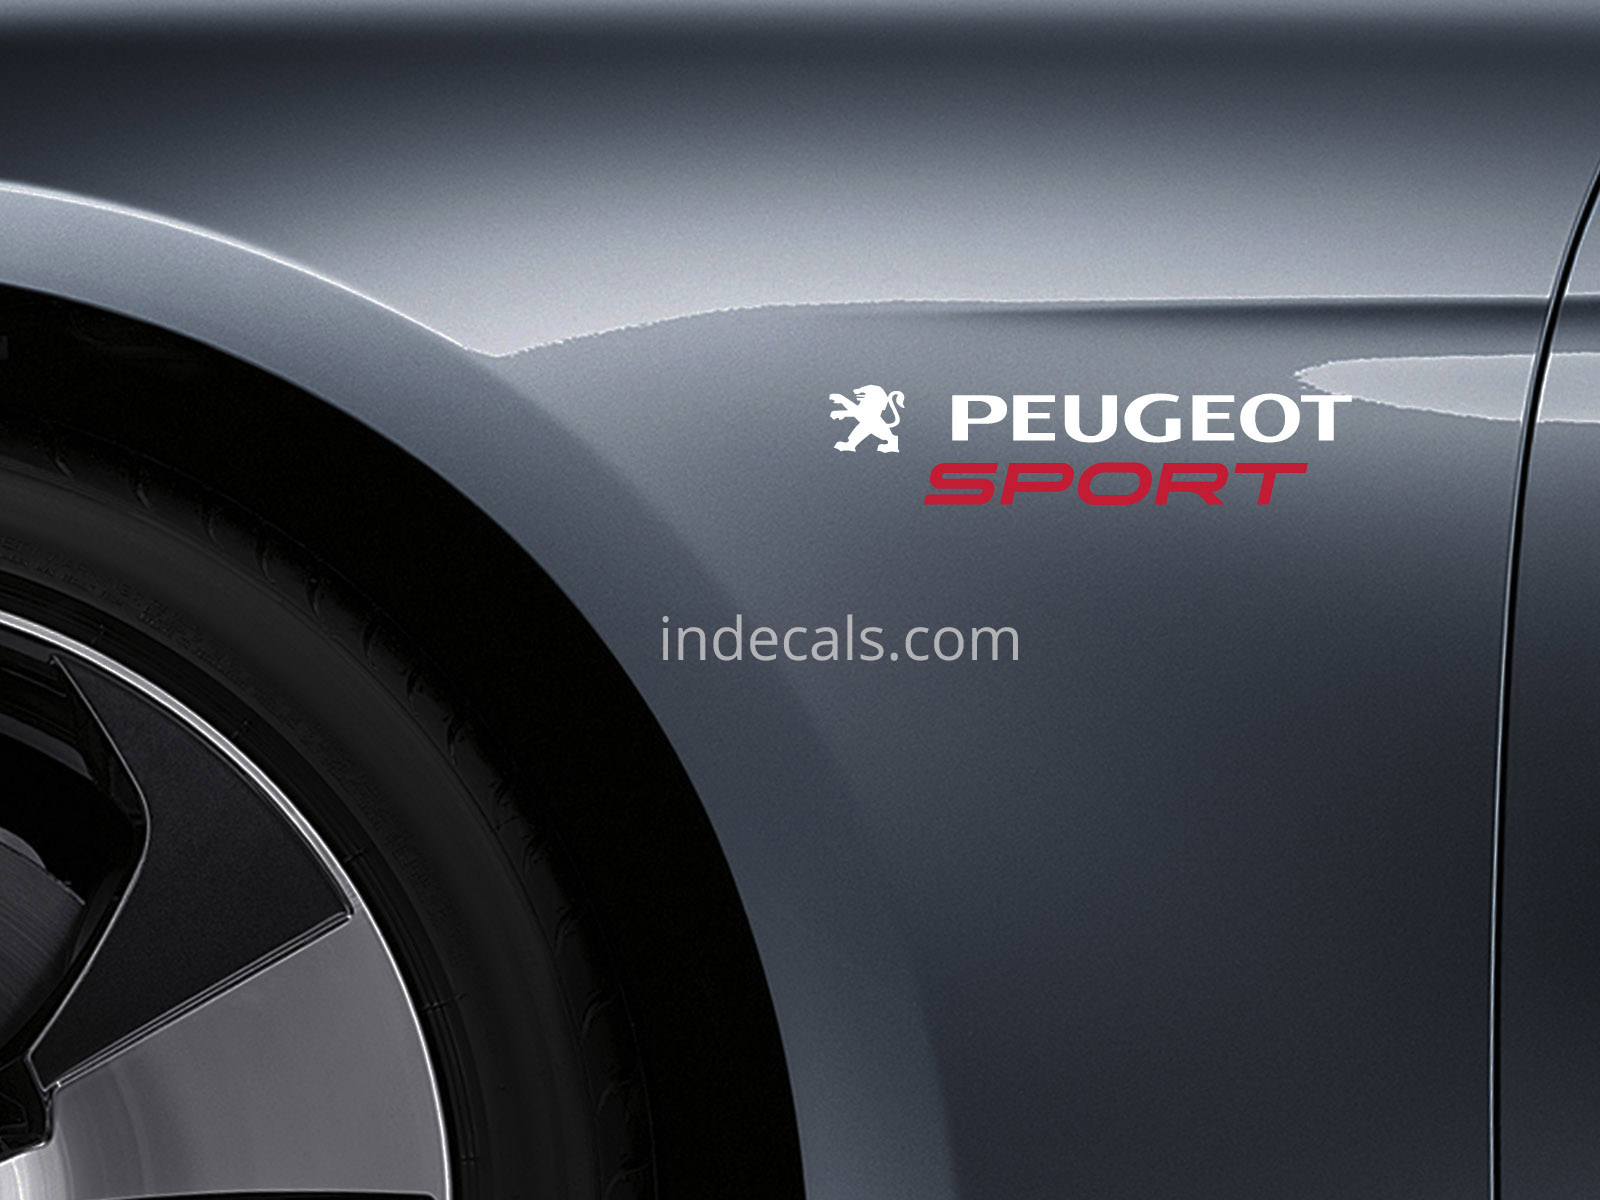 2 x Peugeot Sports Stickers for Wings - White & Red